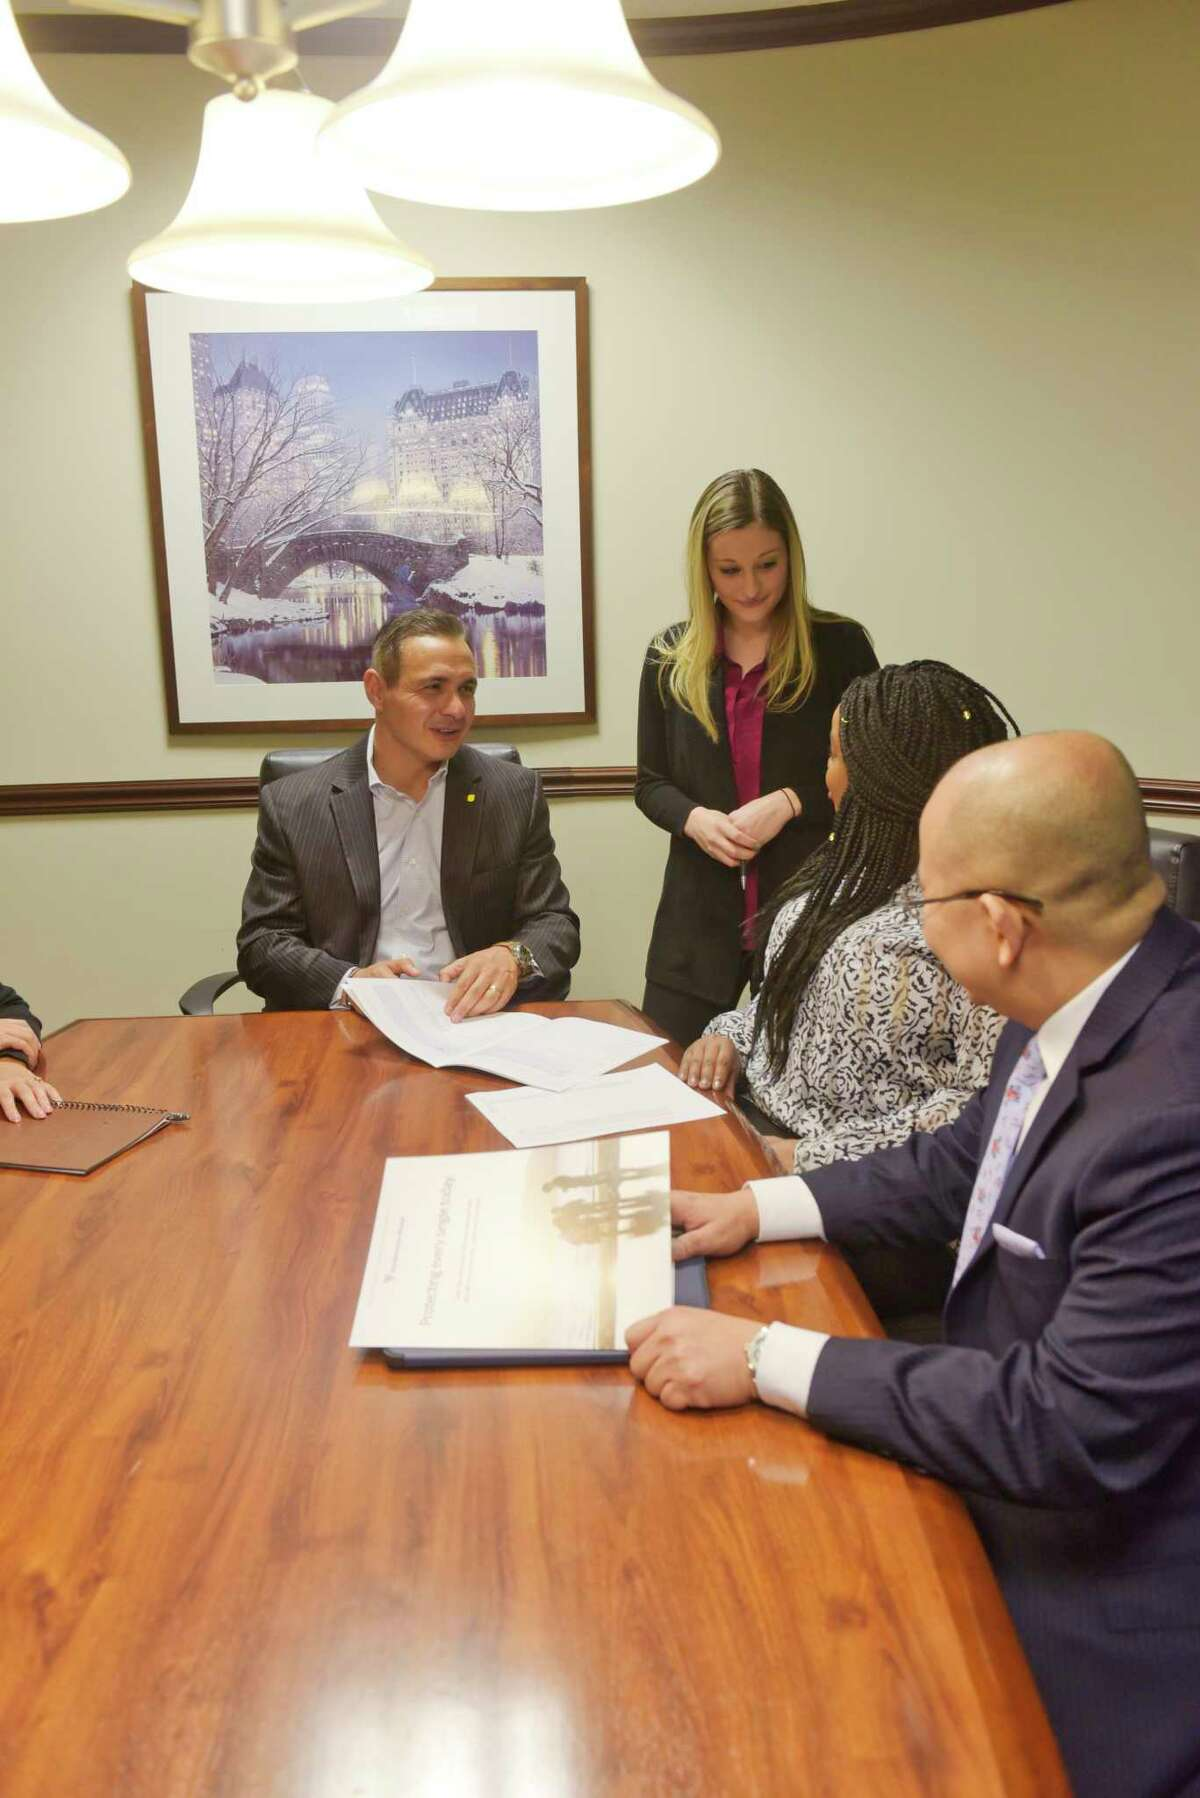 Northwestern Mutual employees, from left to right, Alex Tronco, managing partner, Janelle Krupski, sales executive team member, Rashane Redman, director of client relations and marketing, and Frank Tan, financial advisor, take part in a meeting on Tuesday, March 10, 2020, in Latham, N.Y. (Paul Buckowski/Times Union)